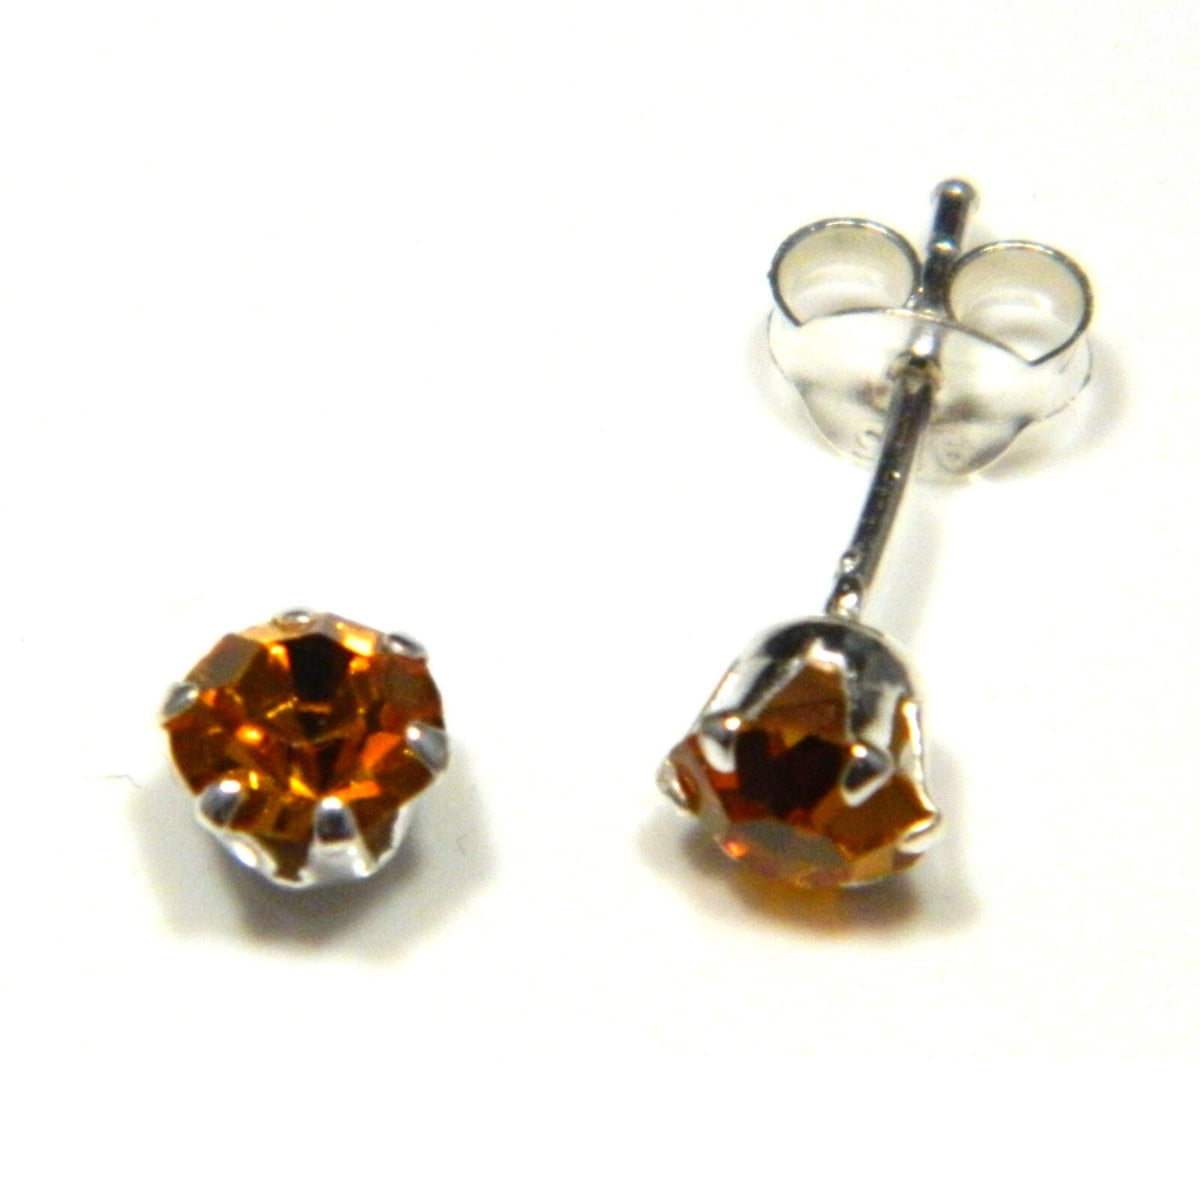 5 mm amber coloured crystal stud round solitaire earrings in sterling silver